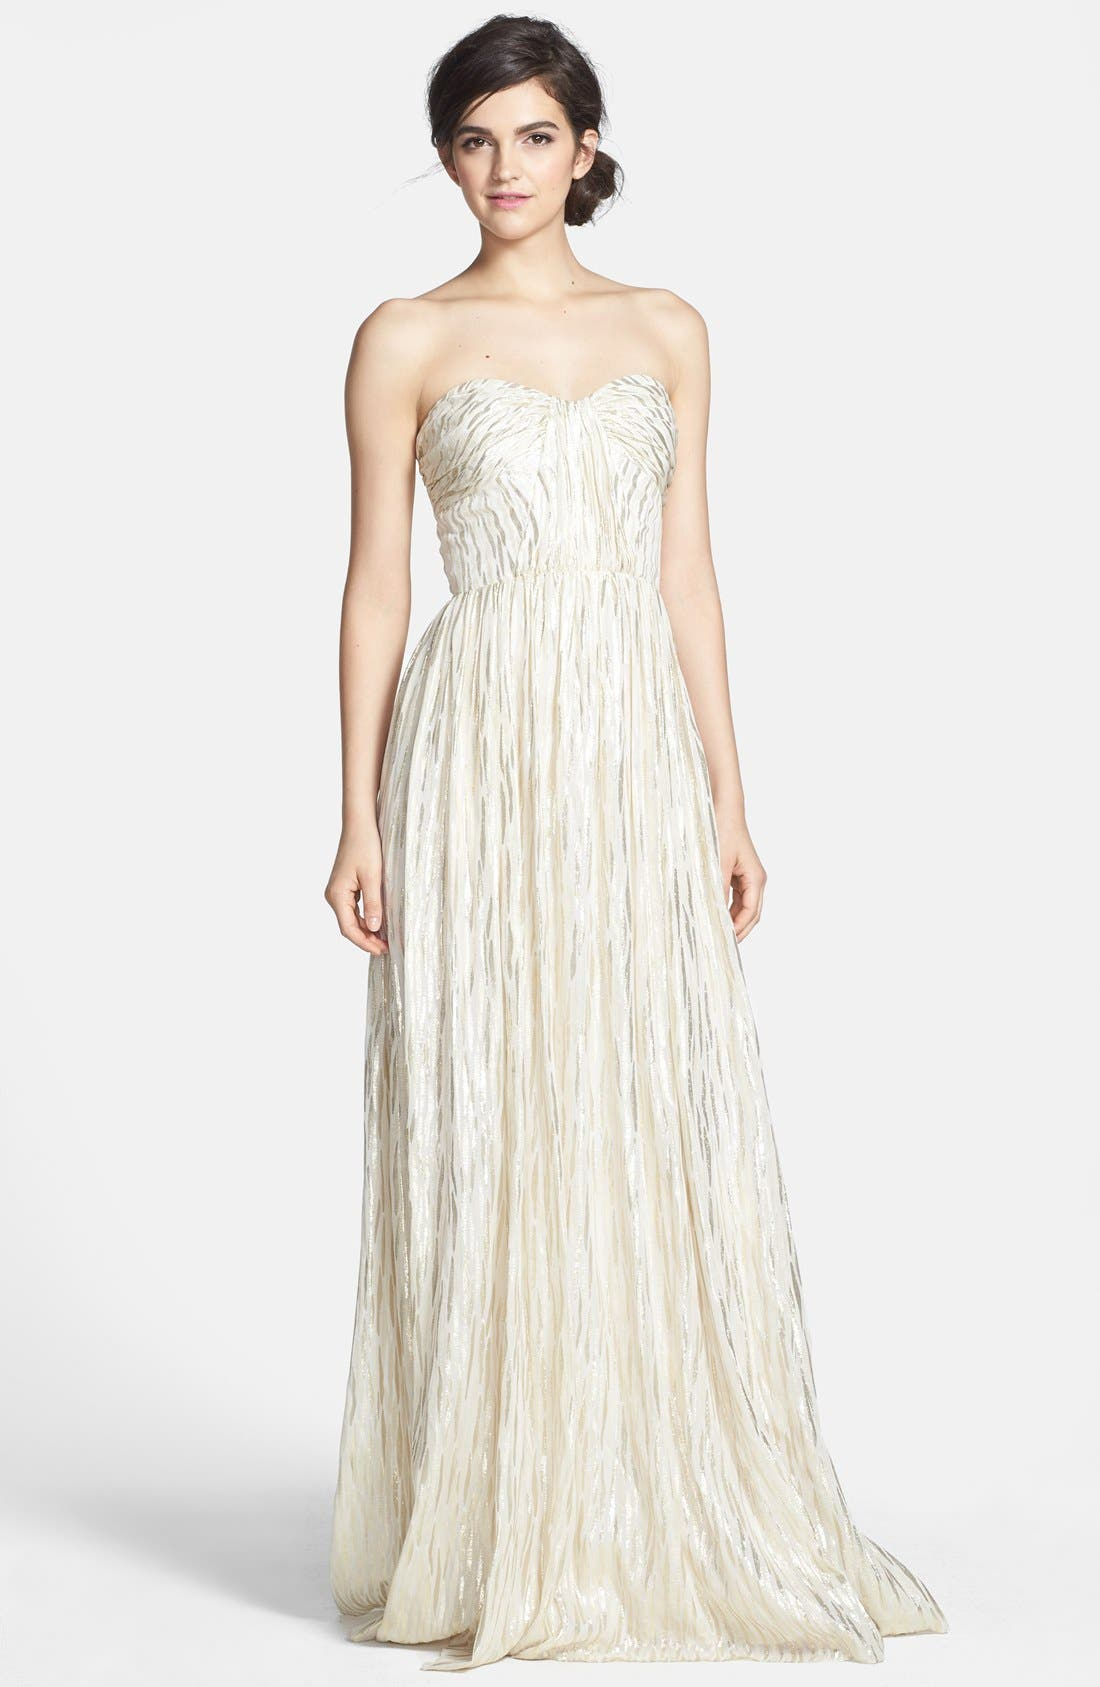 Alternate Image 1 Selected - ERIN erin fetherston 'Coralie' Foiled Silk Chiffon Gown